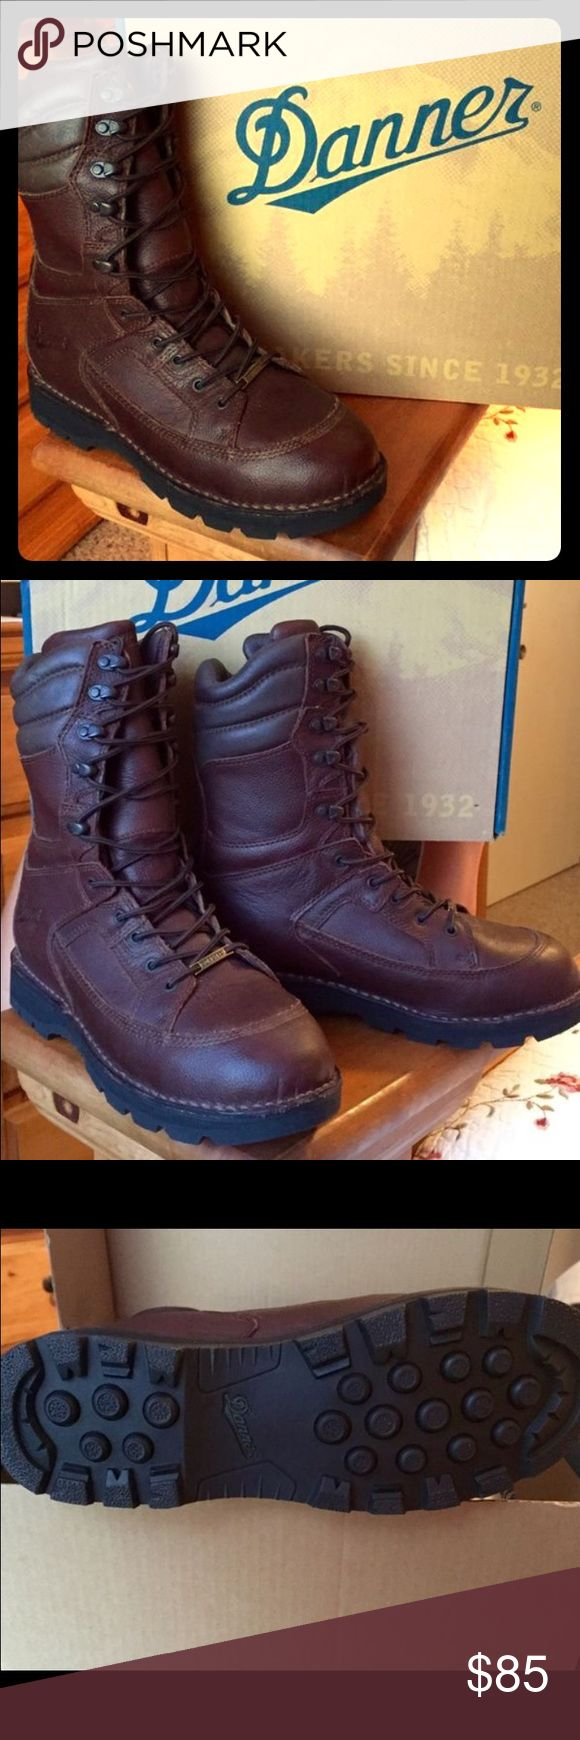 Mens Danner Boots Mens size 9 Med. Danner Work Boots! I bought these a 1/2 size to small for my Husband unfortunately at $130.00, Regular $199.99 Never worn, Brand New. This is an upscale brand that wears well and lasts. Perfect for any hard working man! Danner Shoes Boots